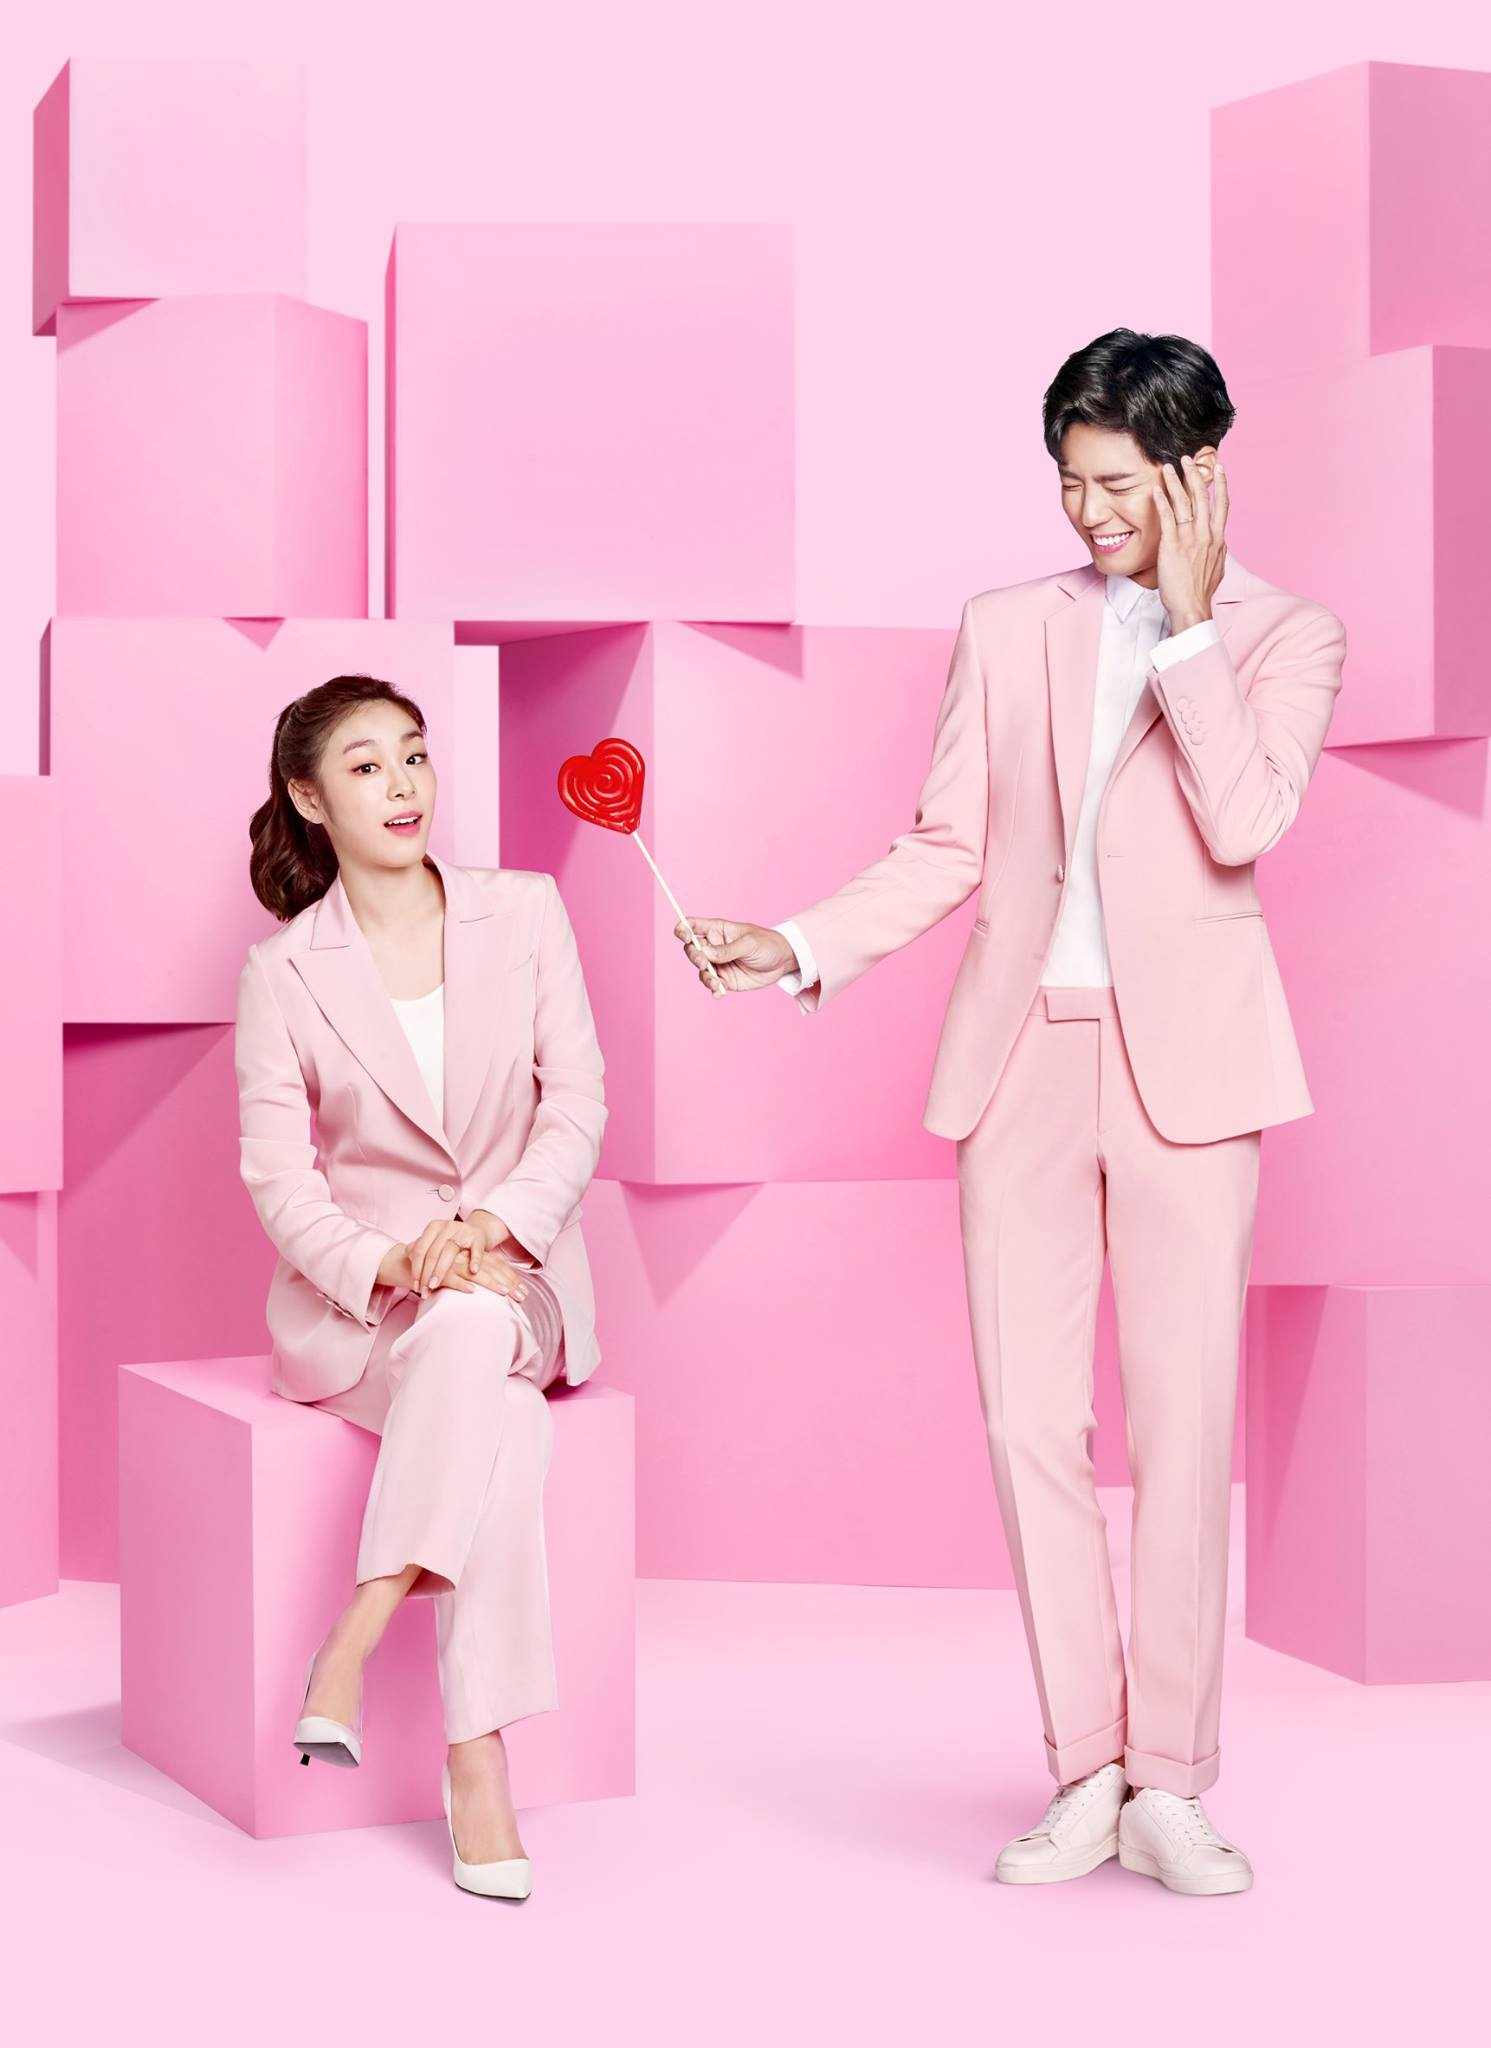 Kim Yuna and Park Bo Gum Go All Pink in New Pictorial for J.ESTINA